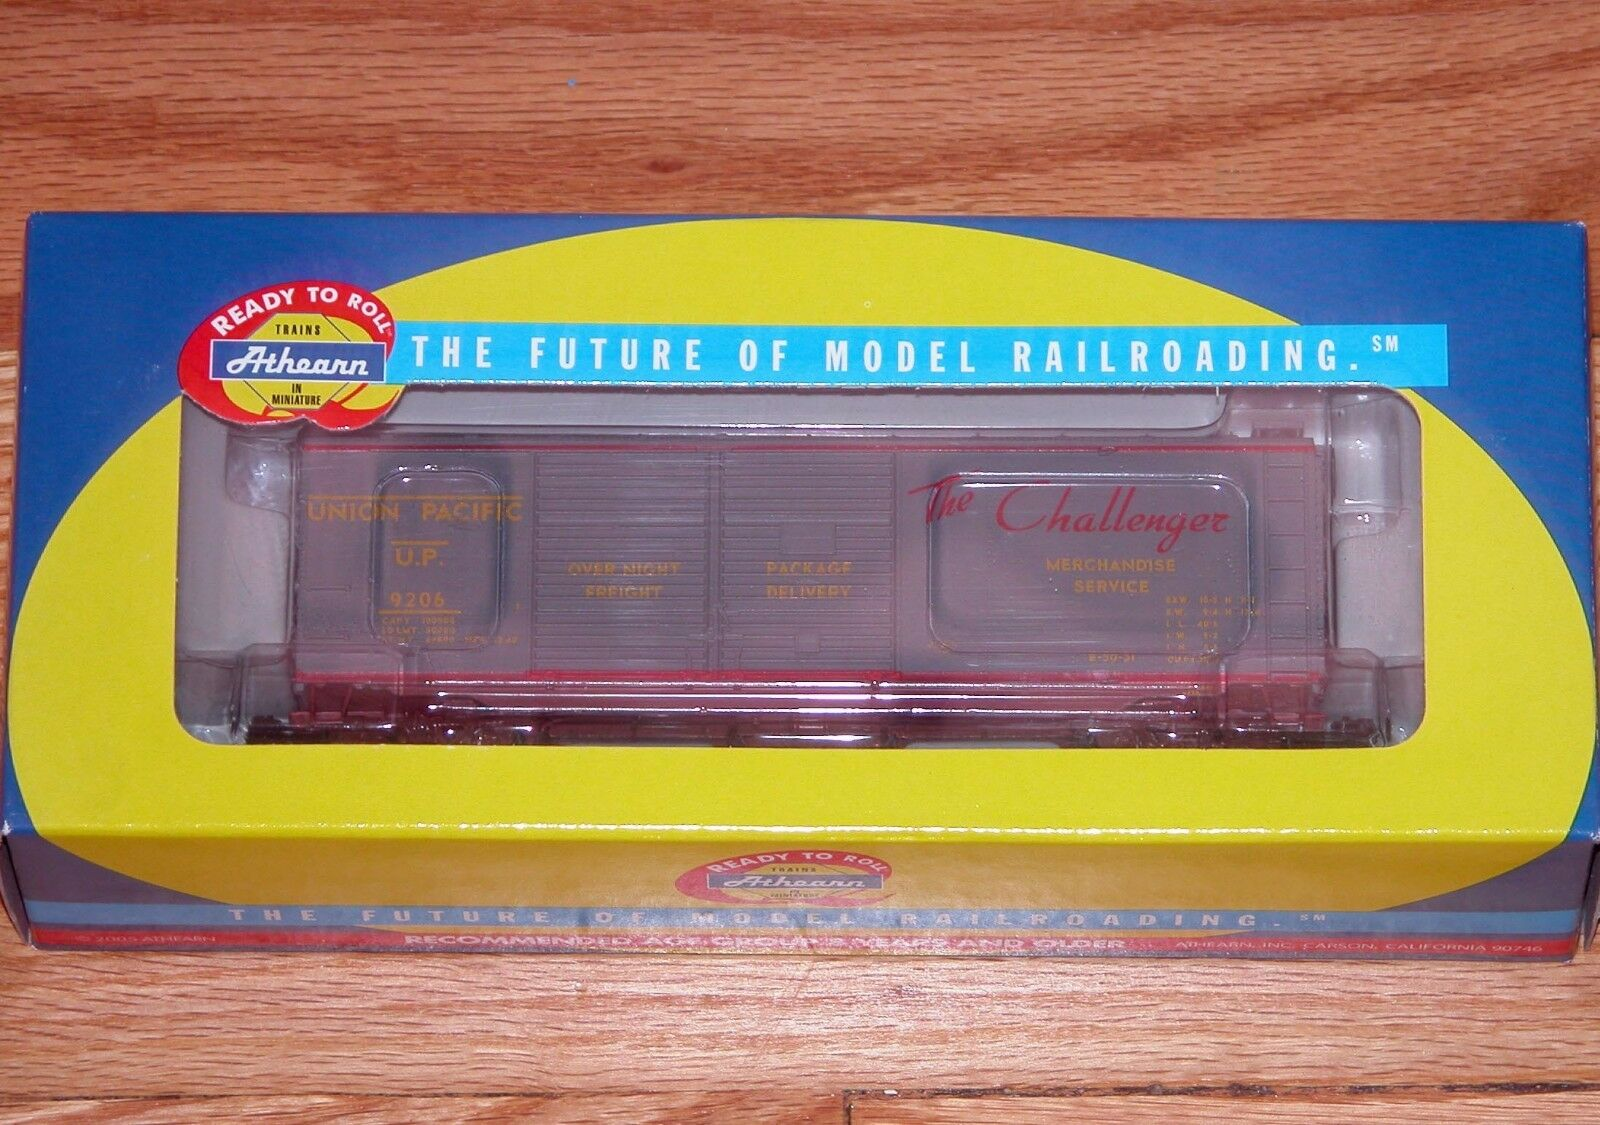 ATHEARN 70193 40' DOUBLE DOOR EXPRESS BOX CAR UNION PACIFIC CHALLENGER UP 9206